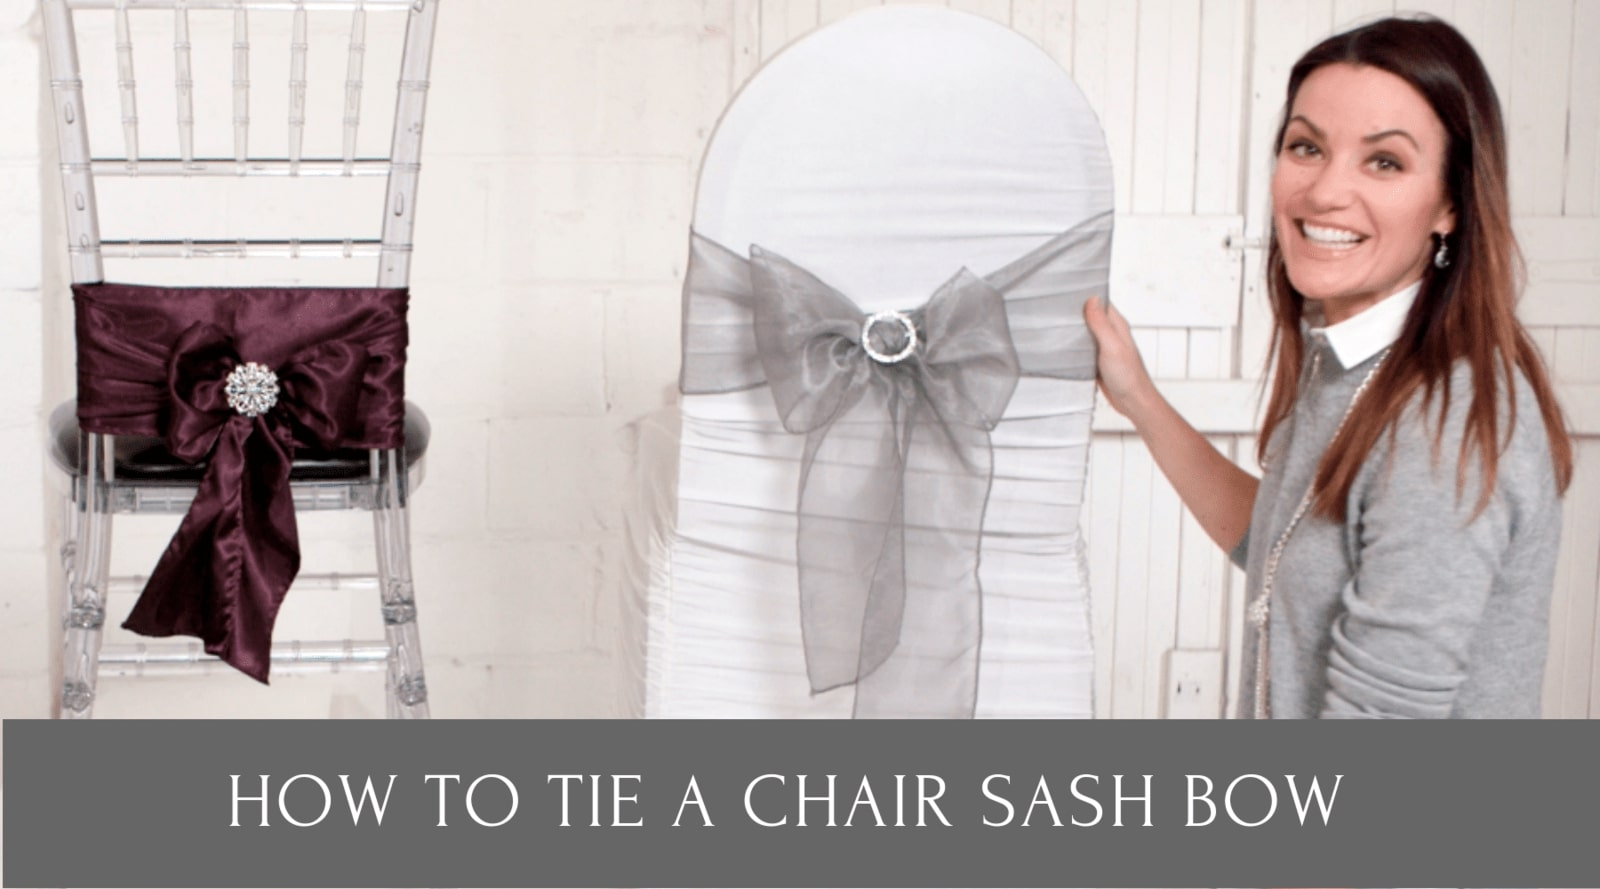 How to Tie a Chair Sash Bow